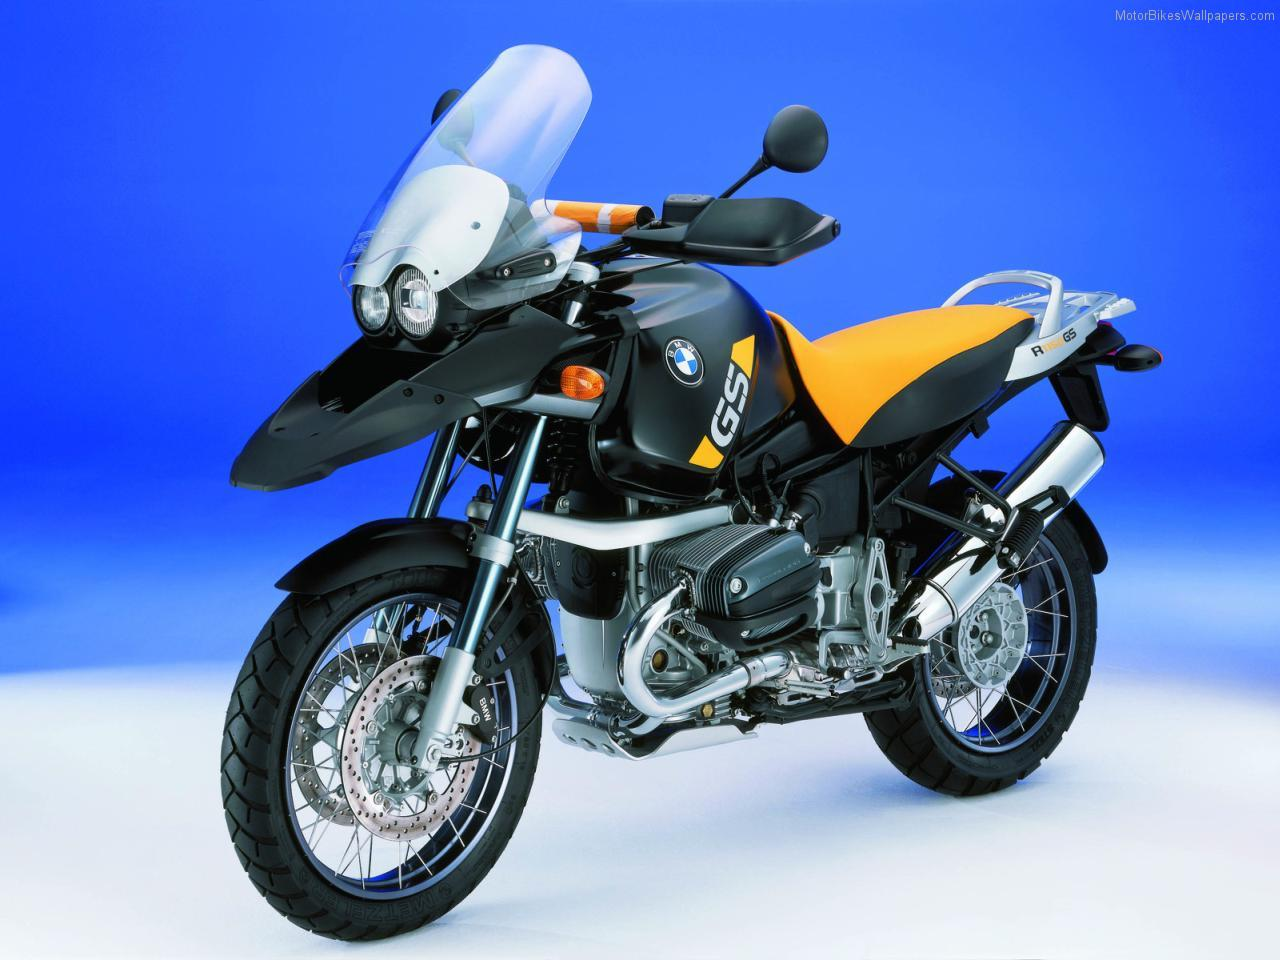 bmw r 1150 gs adventure review and pictures. Black Bedroom Furniture Sets. Home Design Ideas